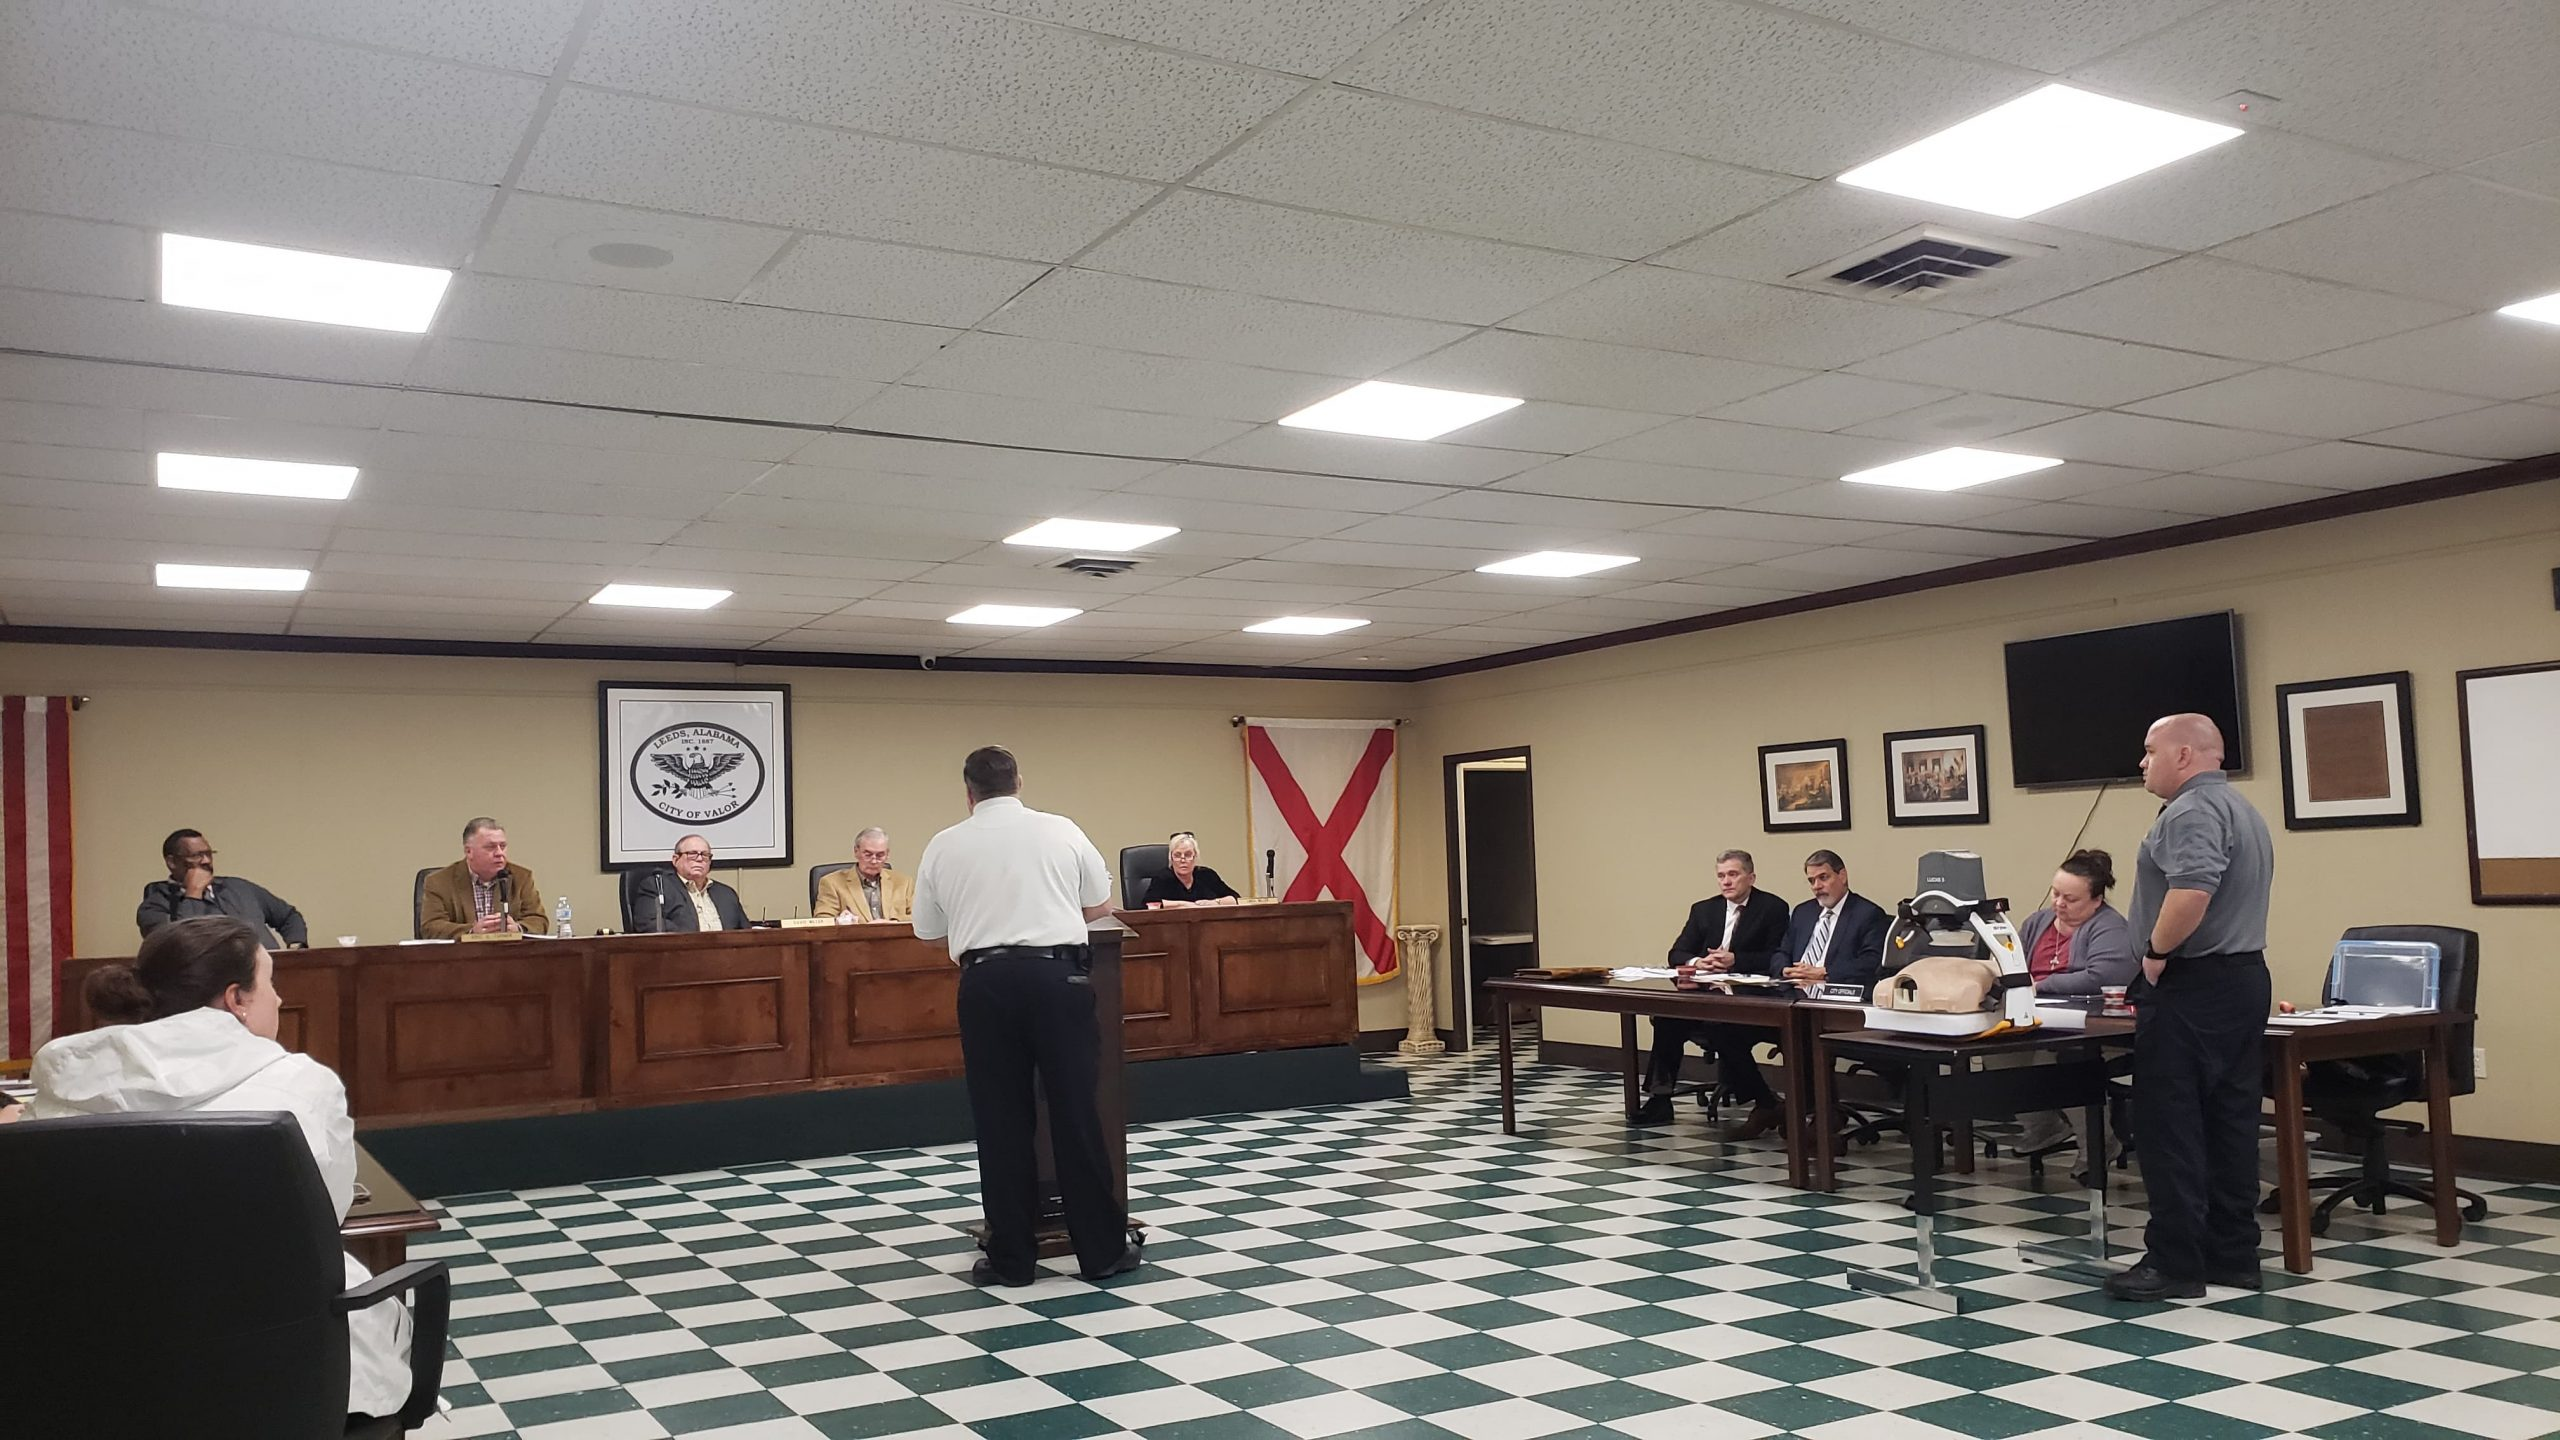 Leeds Council approves funds for Alabama Power property to be used as city hall